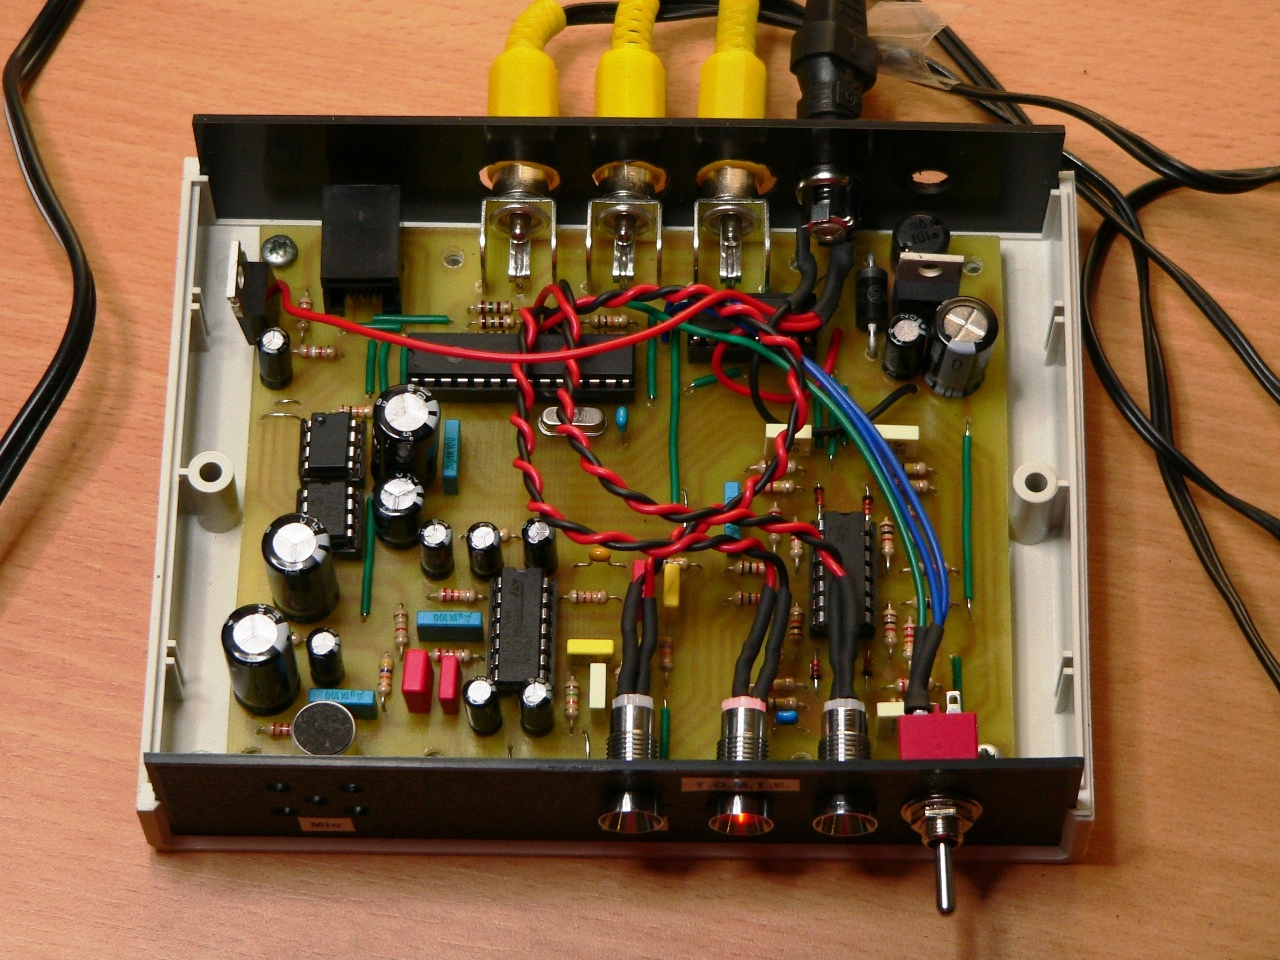 Led Colour Organ Waiting For Friday Light Circuit Diagram Circuits Lab Tomte Mounted Inside The Case